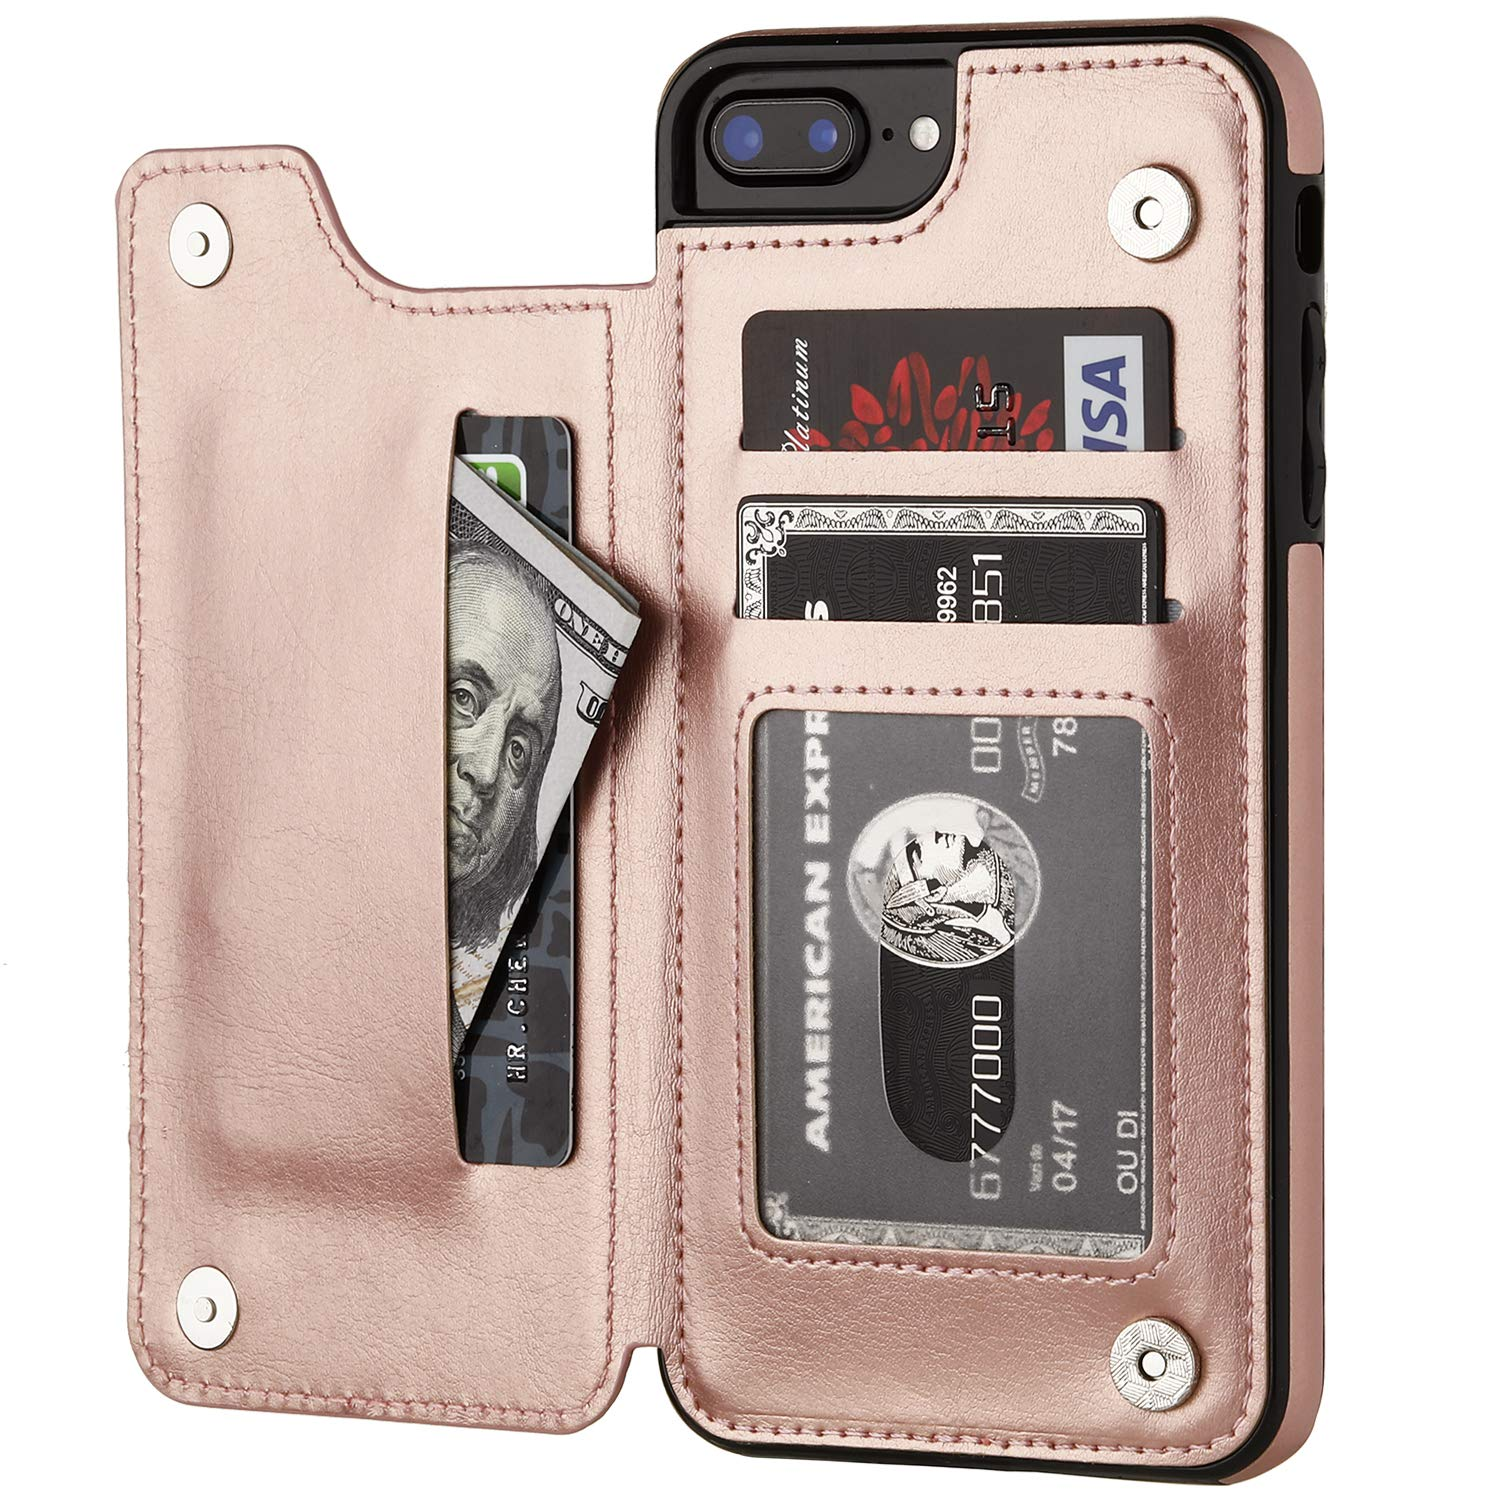 iPhone 7 Plus iPhone 8 Plus Wallet Case with Card Holder,OT ONETOP Premium PU Leather Kickstand Card Slots Case,Double Magnetic Clasp and Durable Shockproof Cover 5.5 Inch(Rose Gold)